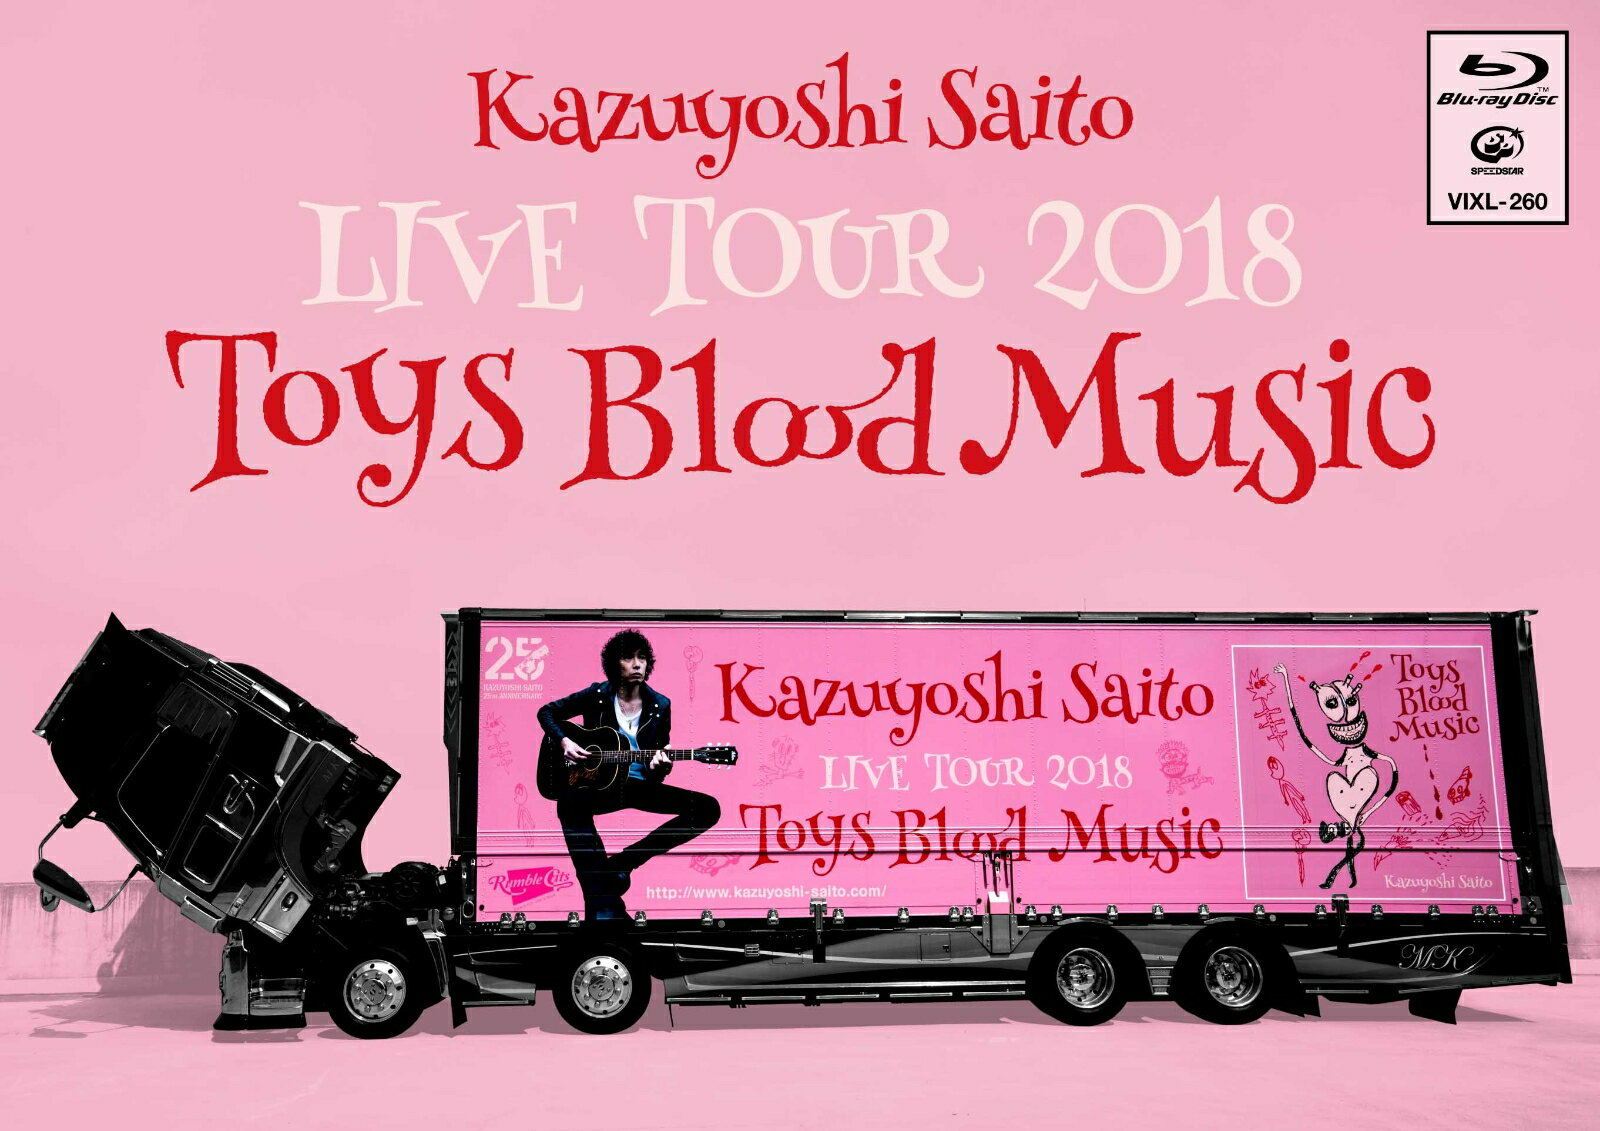 KAZUYOSHI SAITO LIVE TOUR 2018 Toys Blood Music Live at 山梨コラニー文化ホール 2018.6.2【Blu-ray】画像